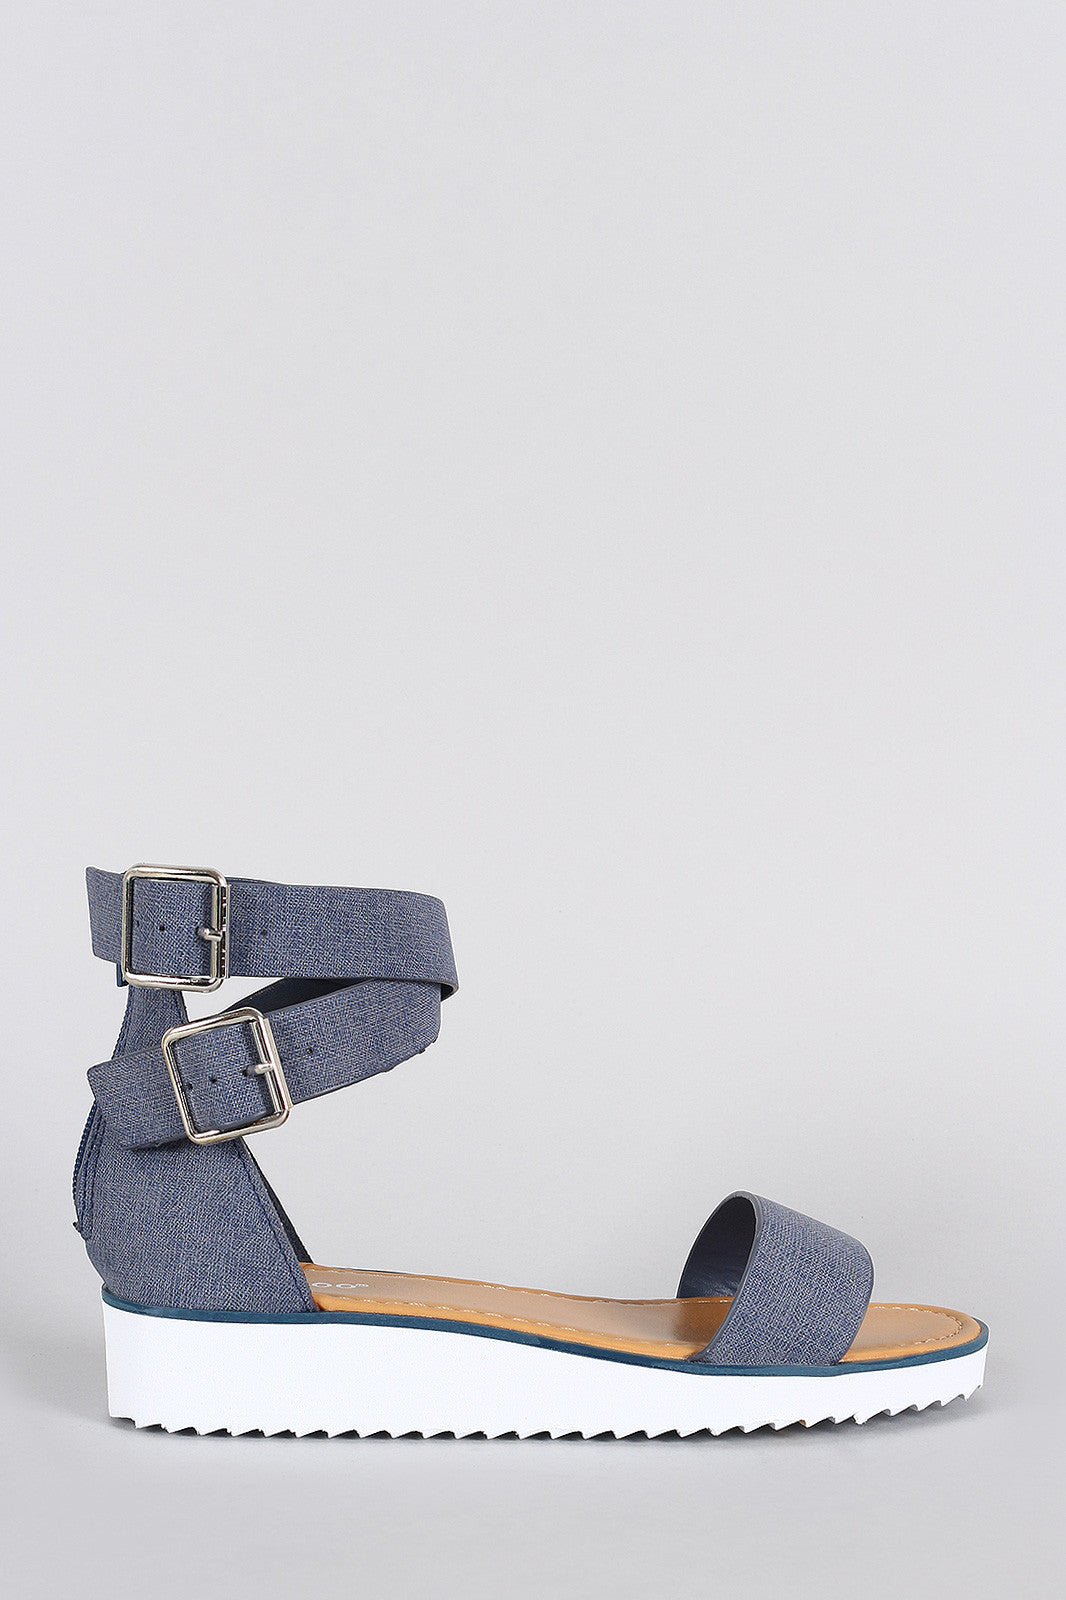 Bamboo Nubuck Ankle Straps Flatform Sandal - Thick 'N' Curvy Shop - 1